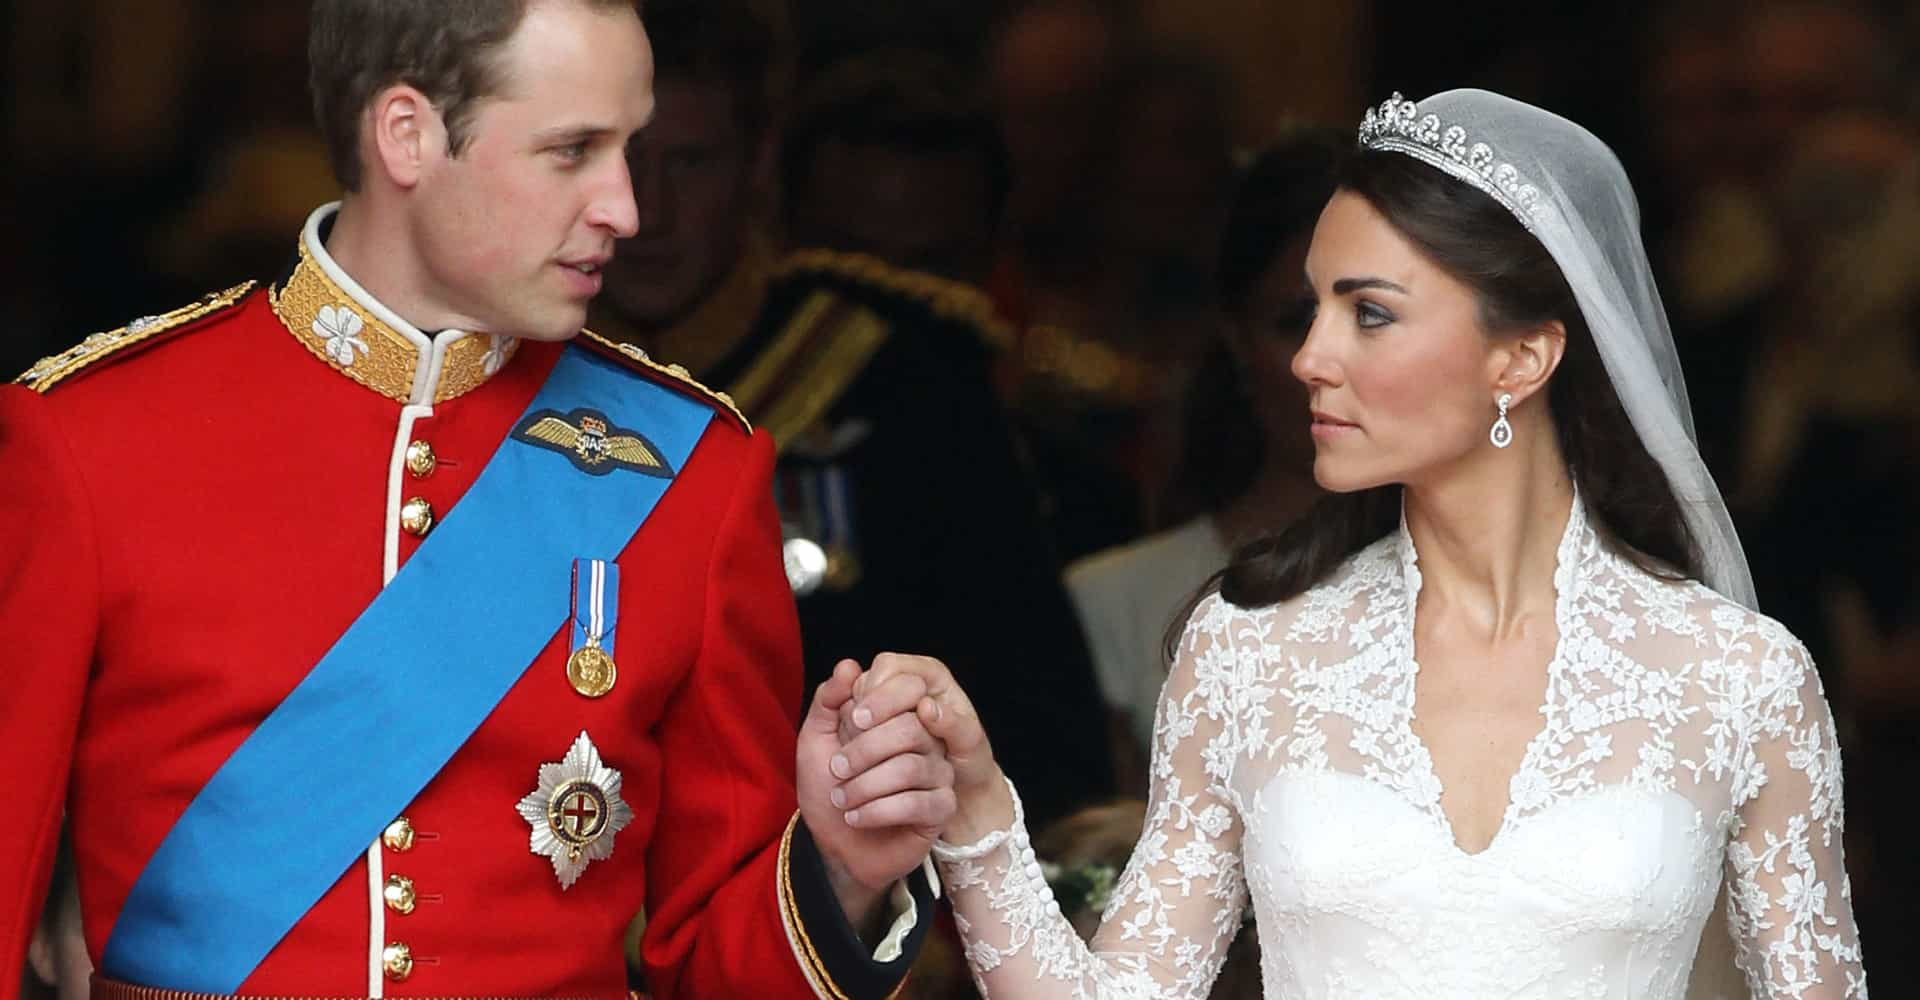 Jewel thieves robbed a historic tiara from the British royal family